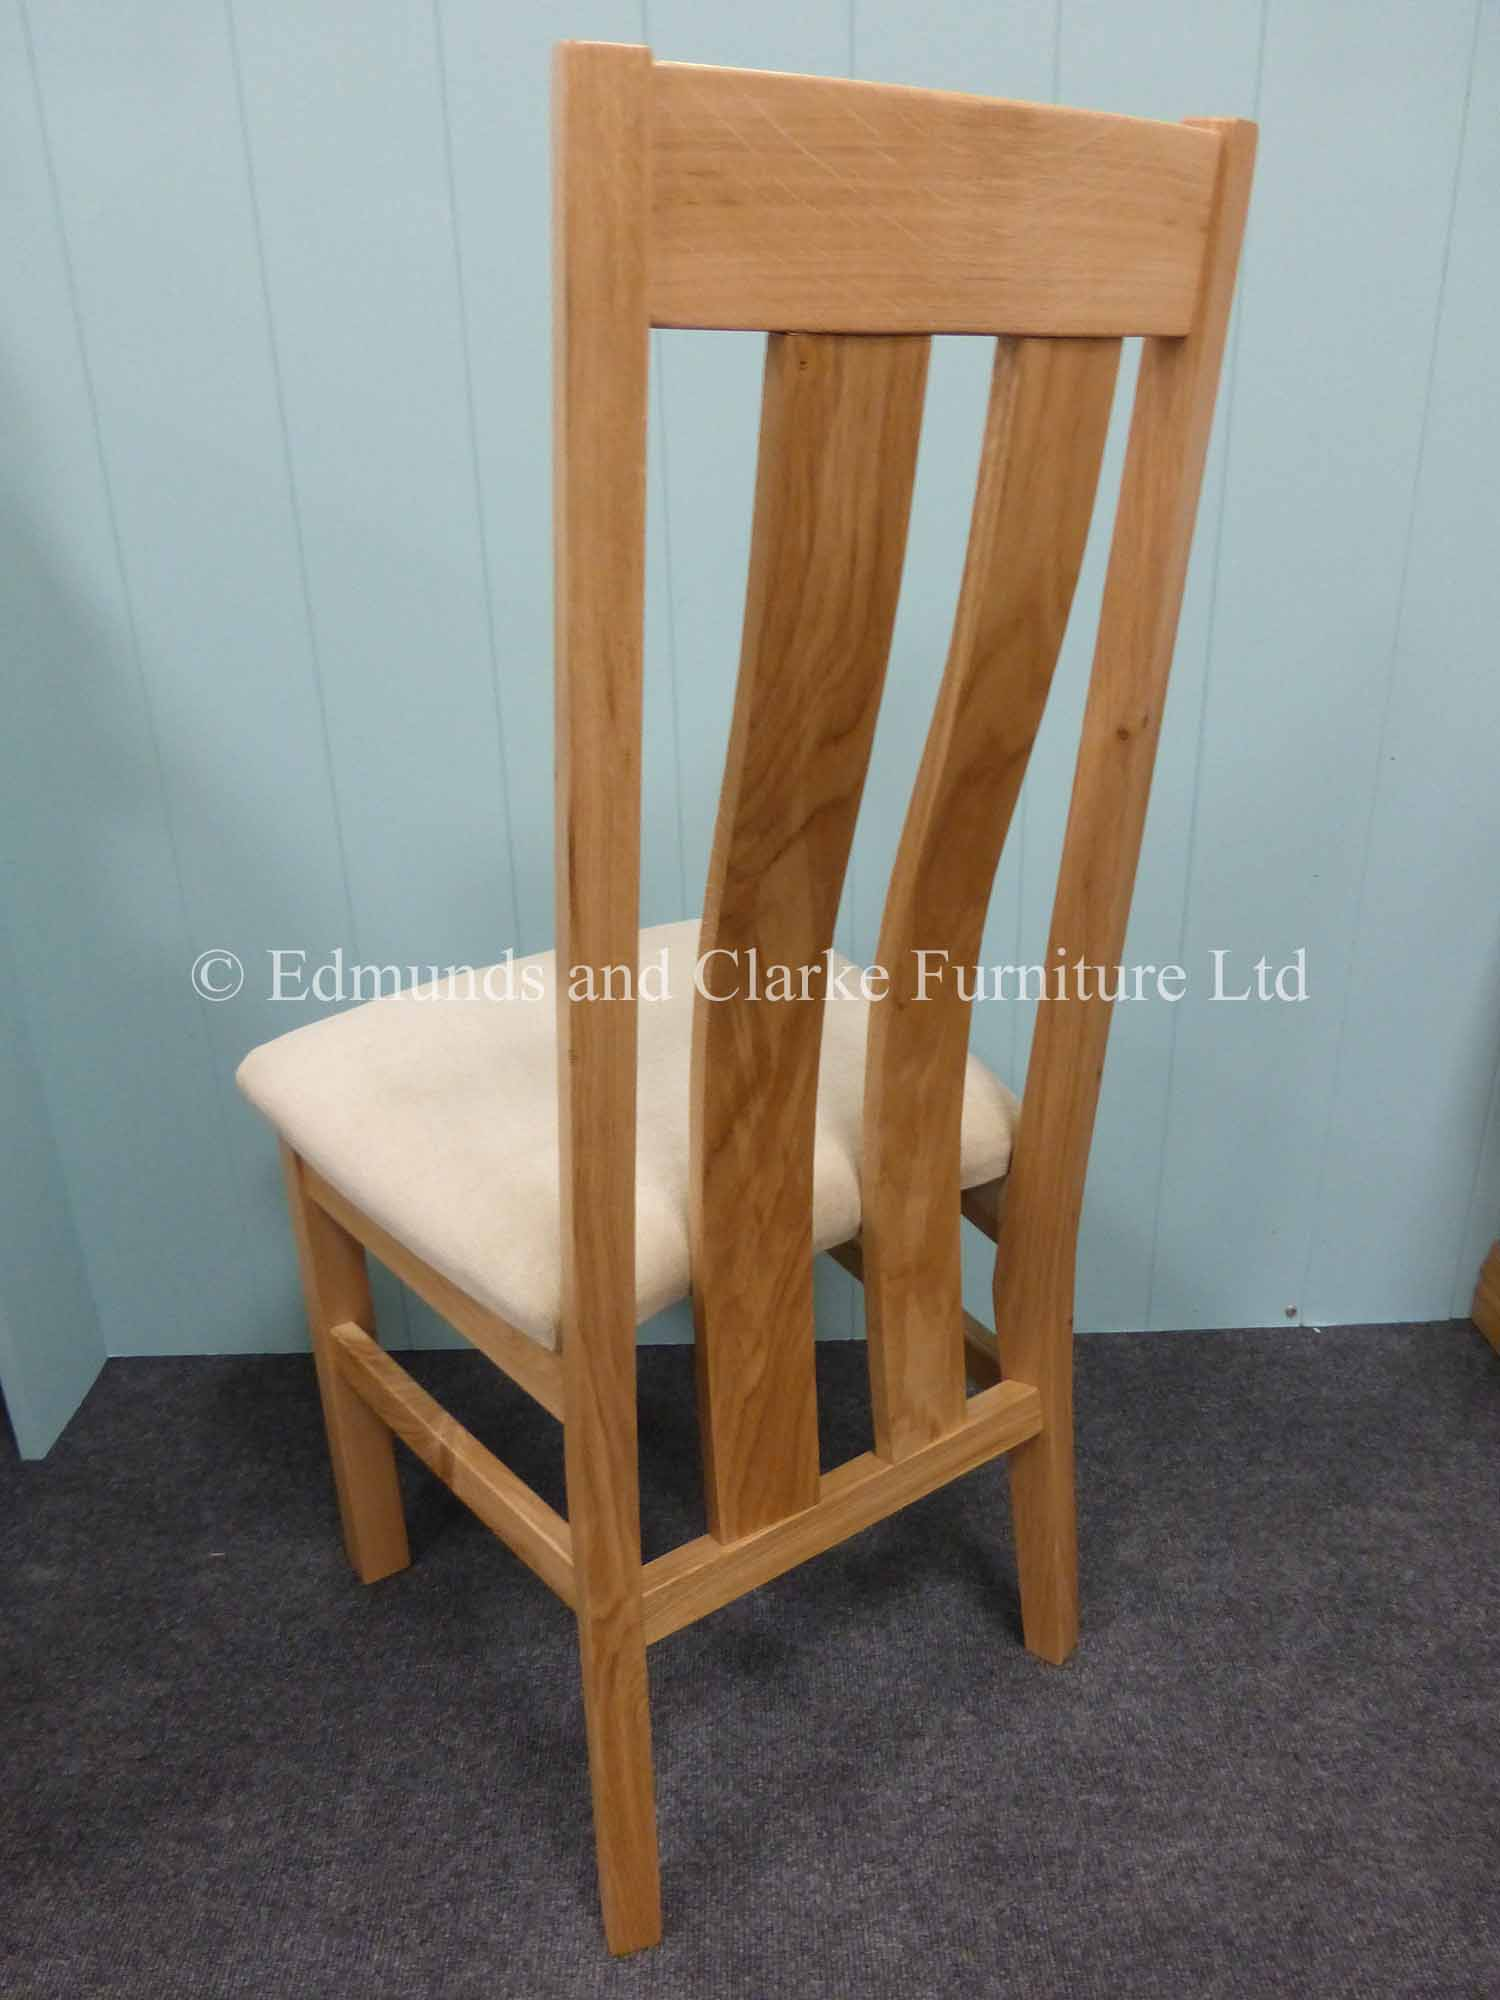 Harris oak dining chair, nice looking chair to go with our Edmunds tables